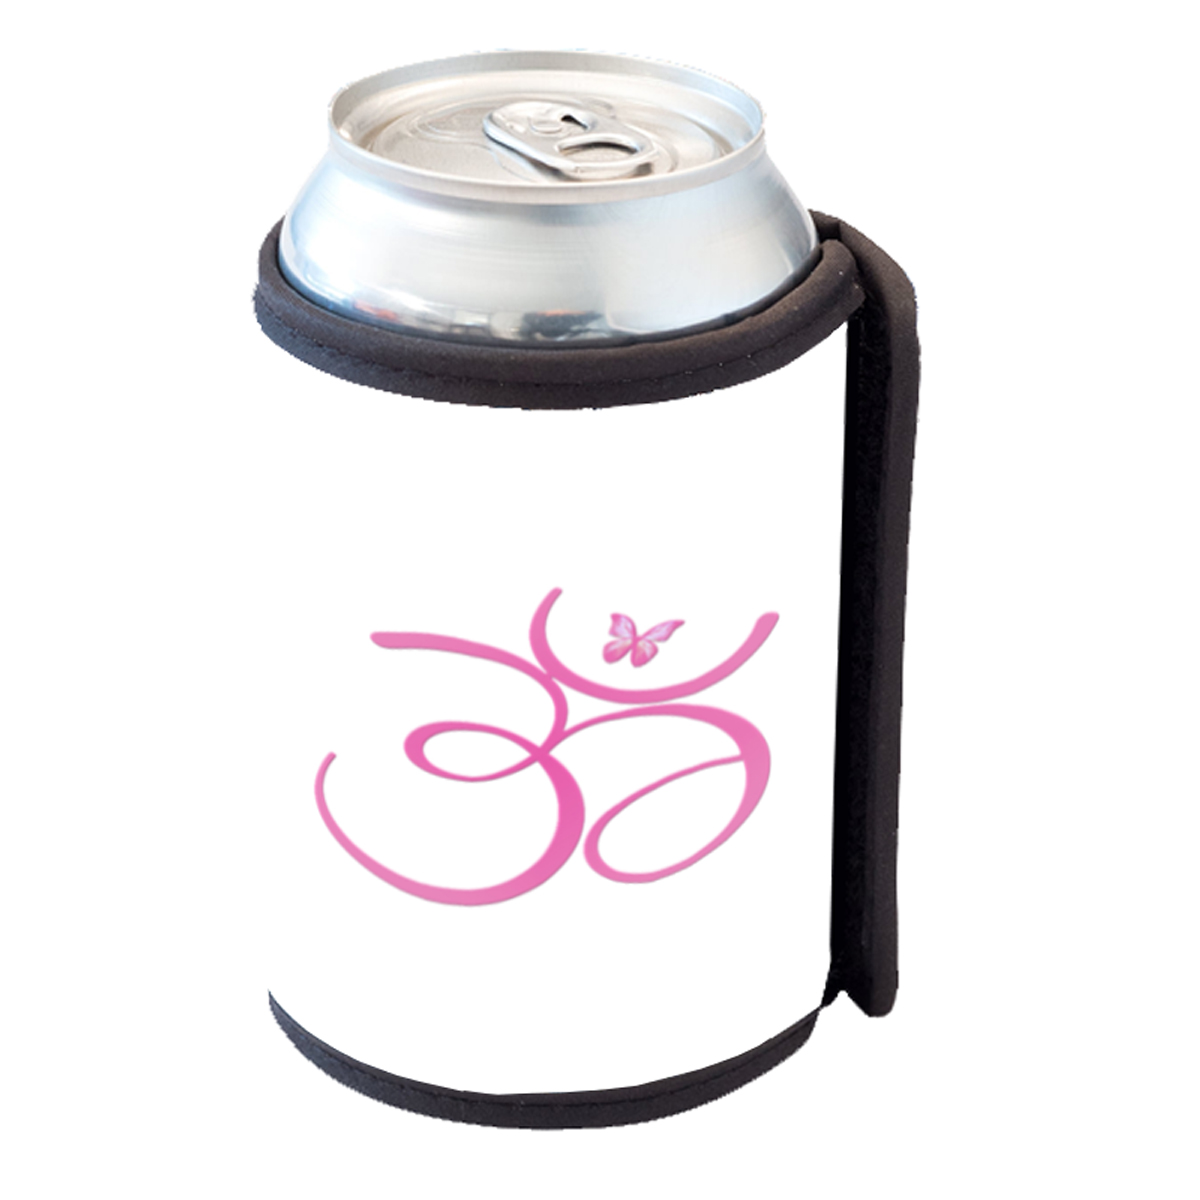 KuzmarK Insulated Drink Can Cooler Hugger - Om Pink Butterfly